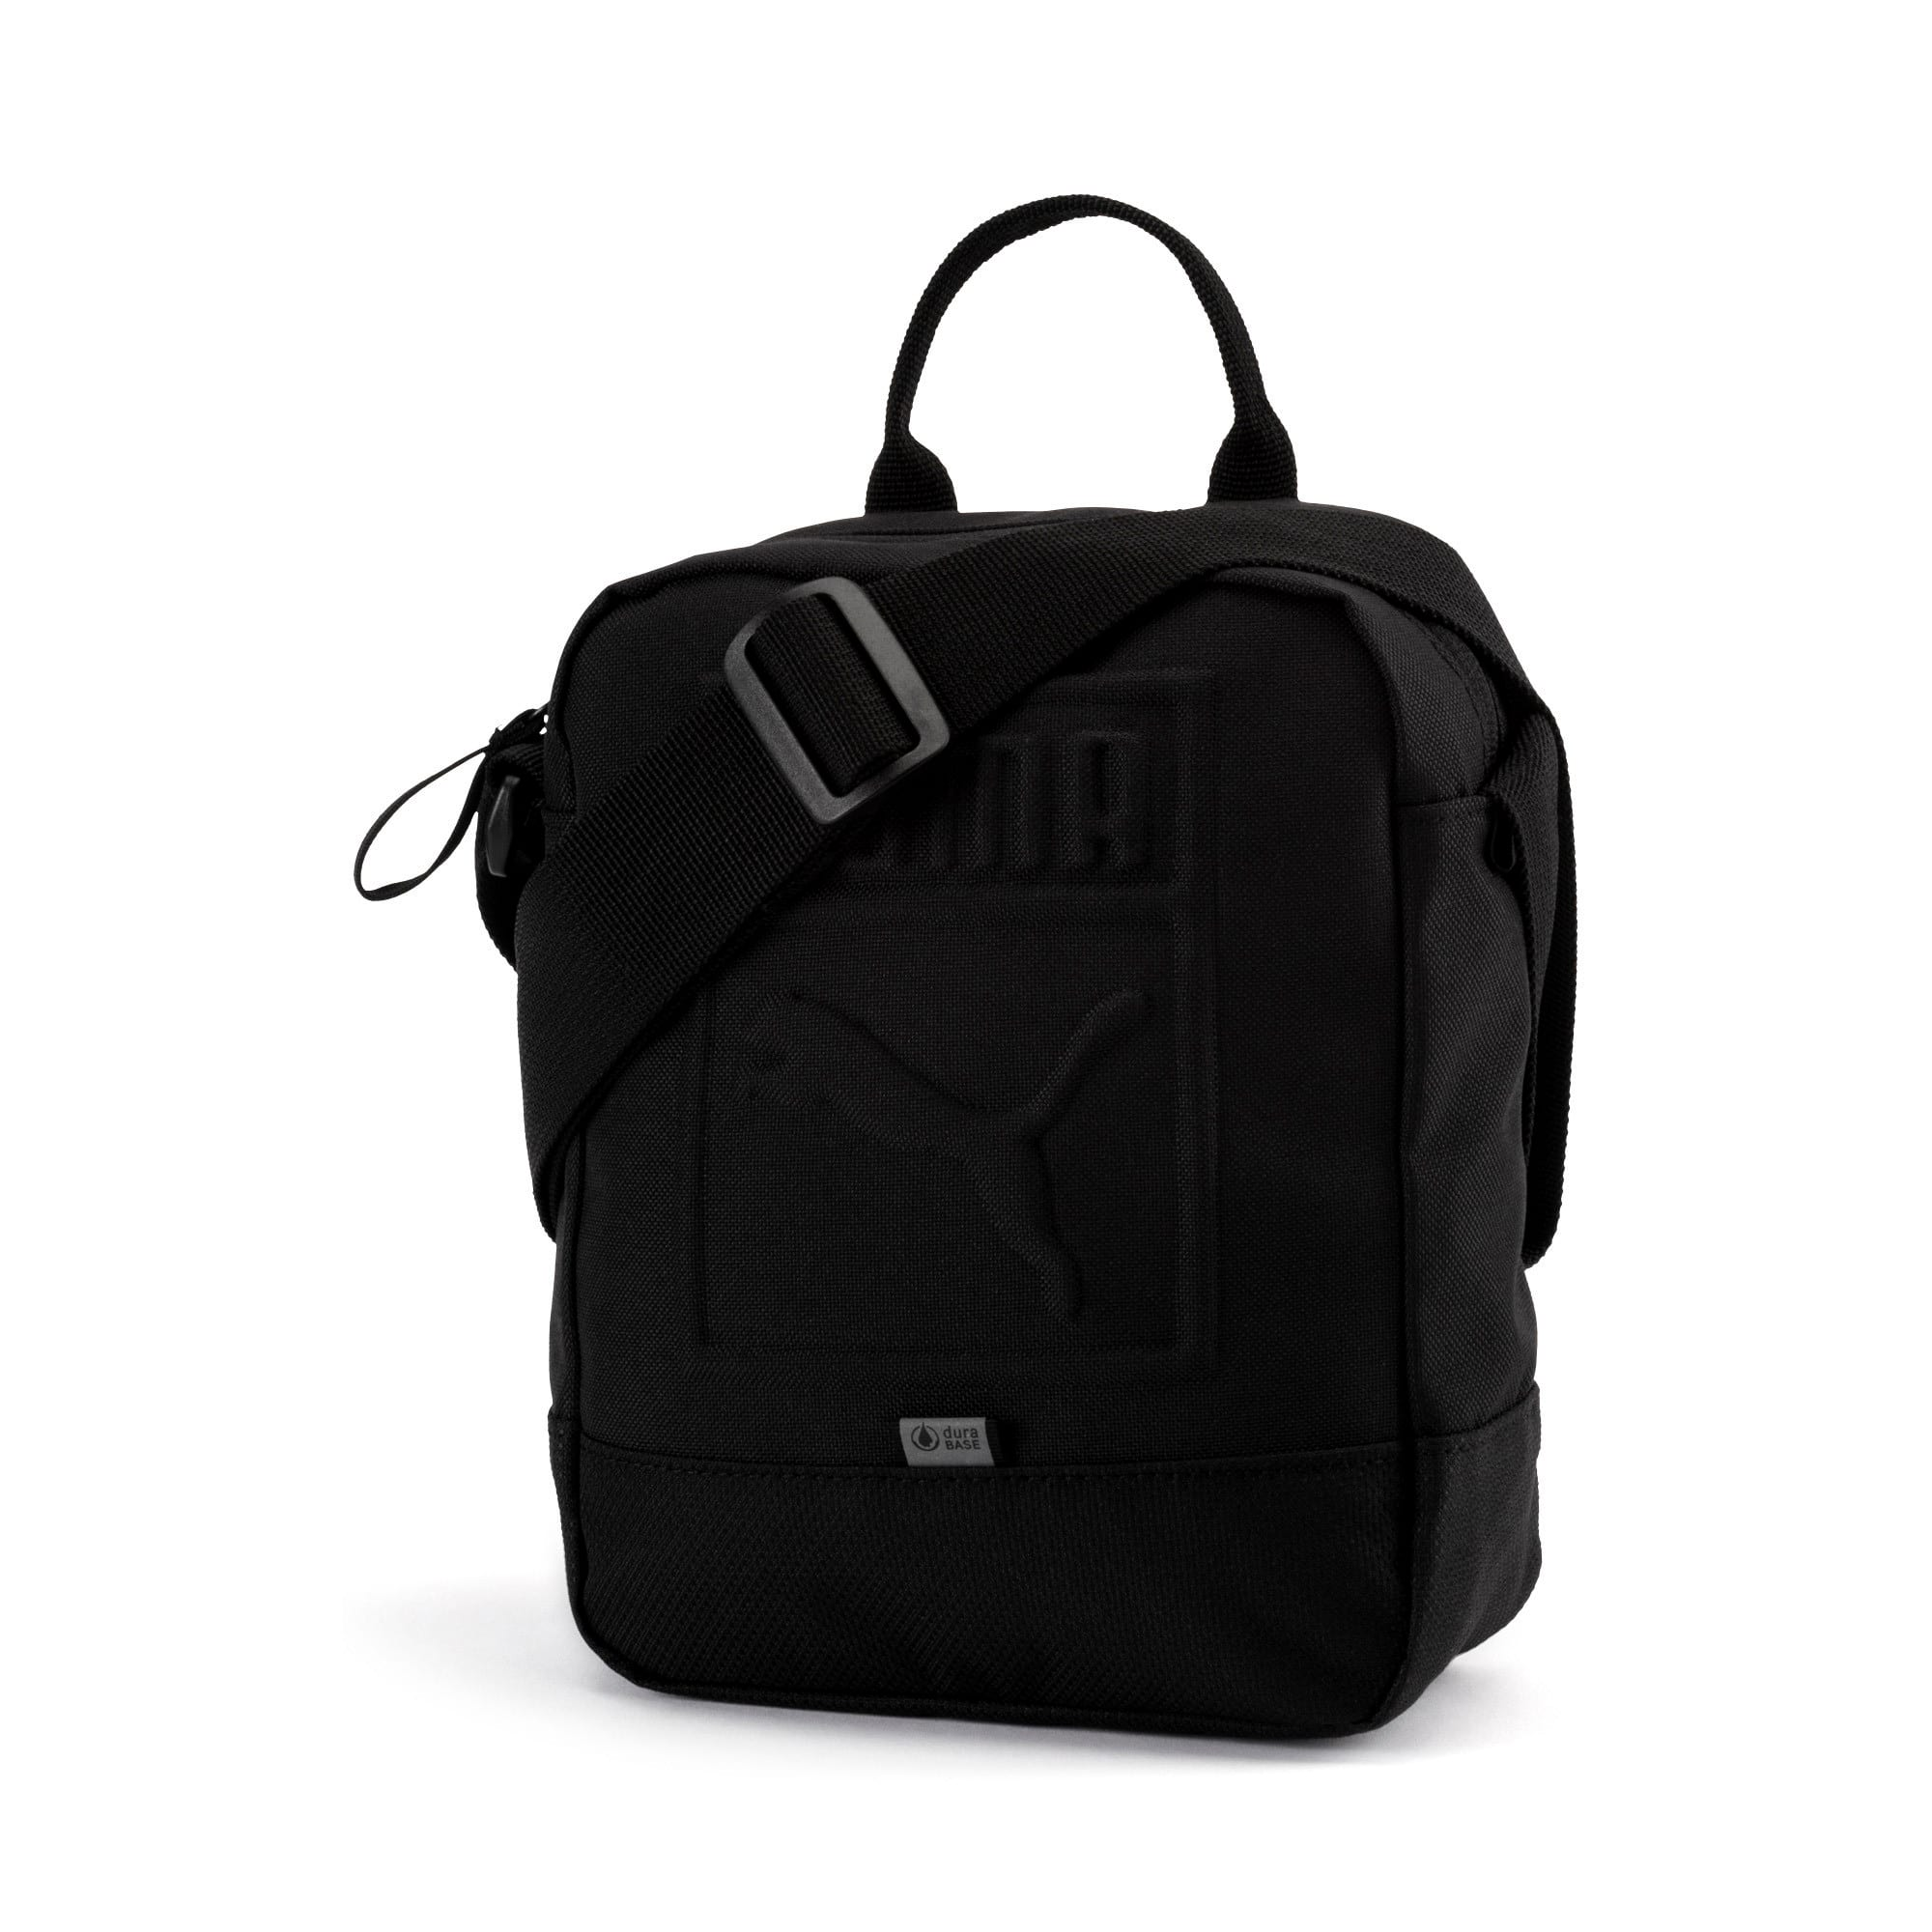 Thumbnail 1 of Portable Shoulder Bag, Puma Black, medium-IND